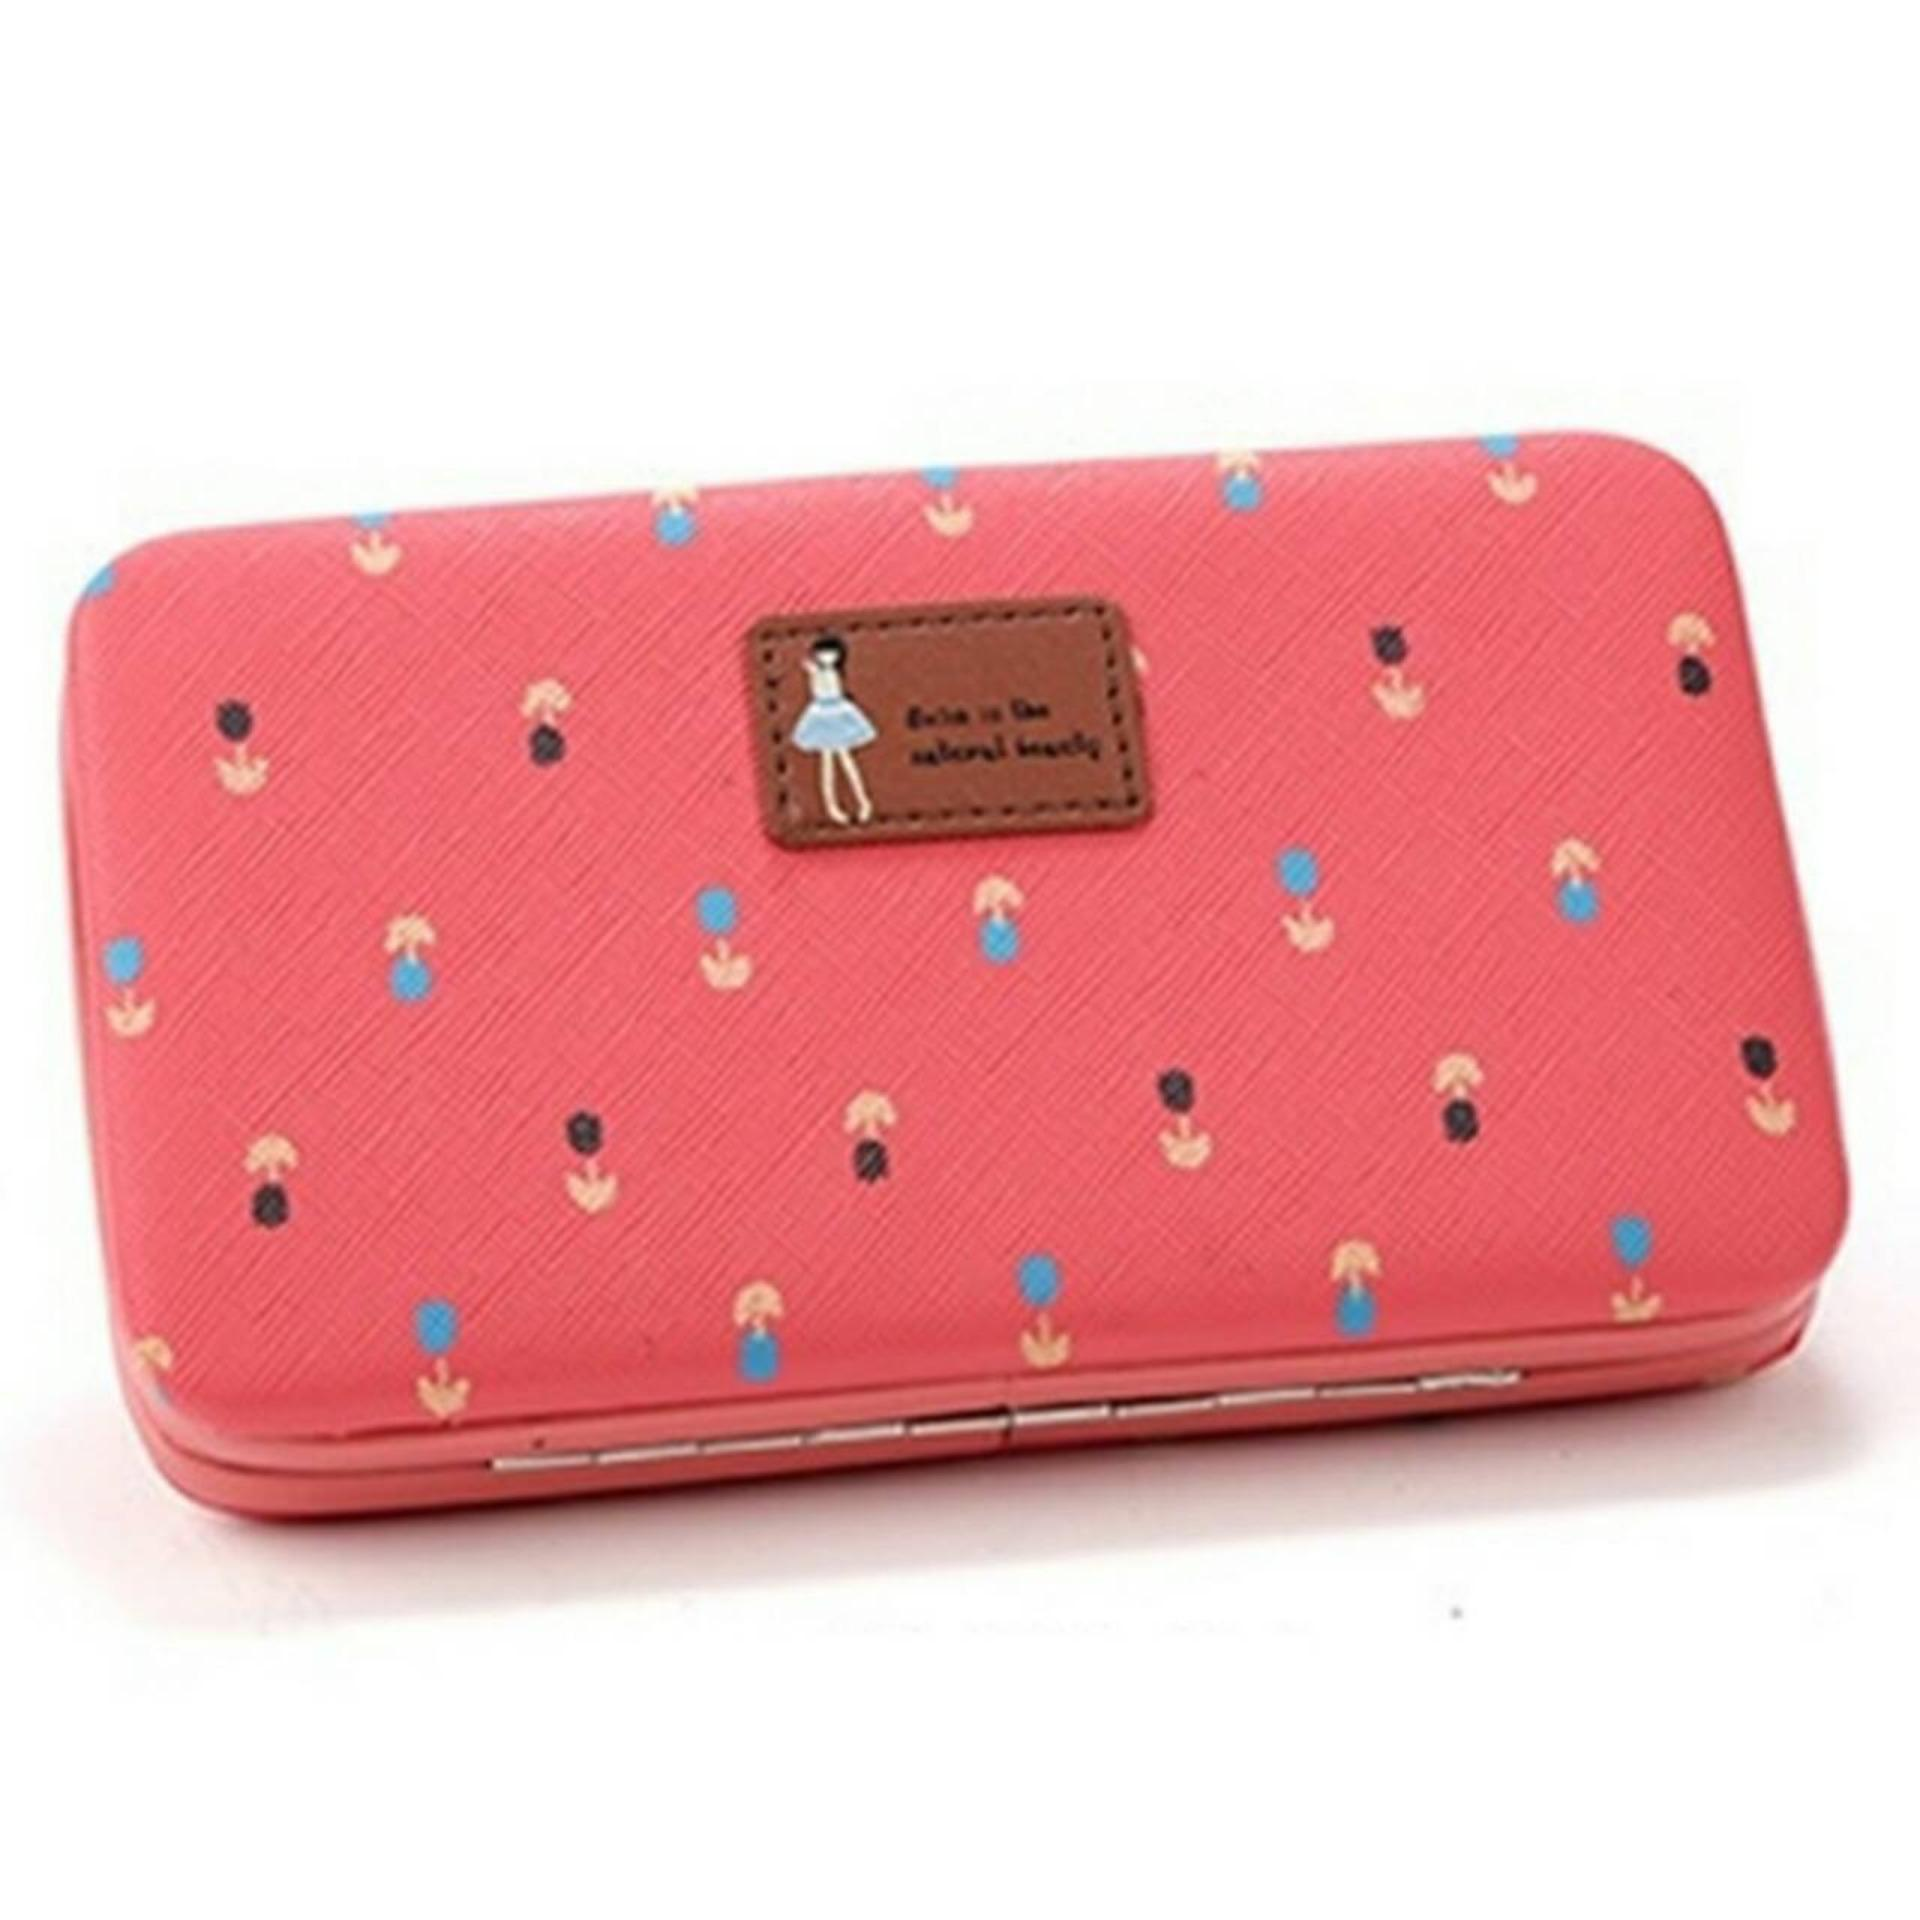 Beli Jims Honey Best Seller Wallet Import Lady Wallet Peach Online Terpercaya